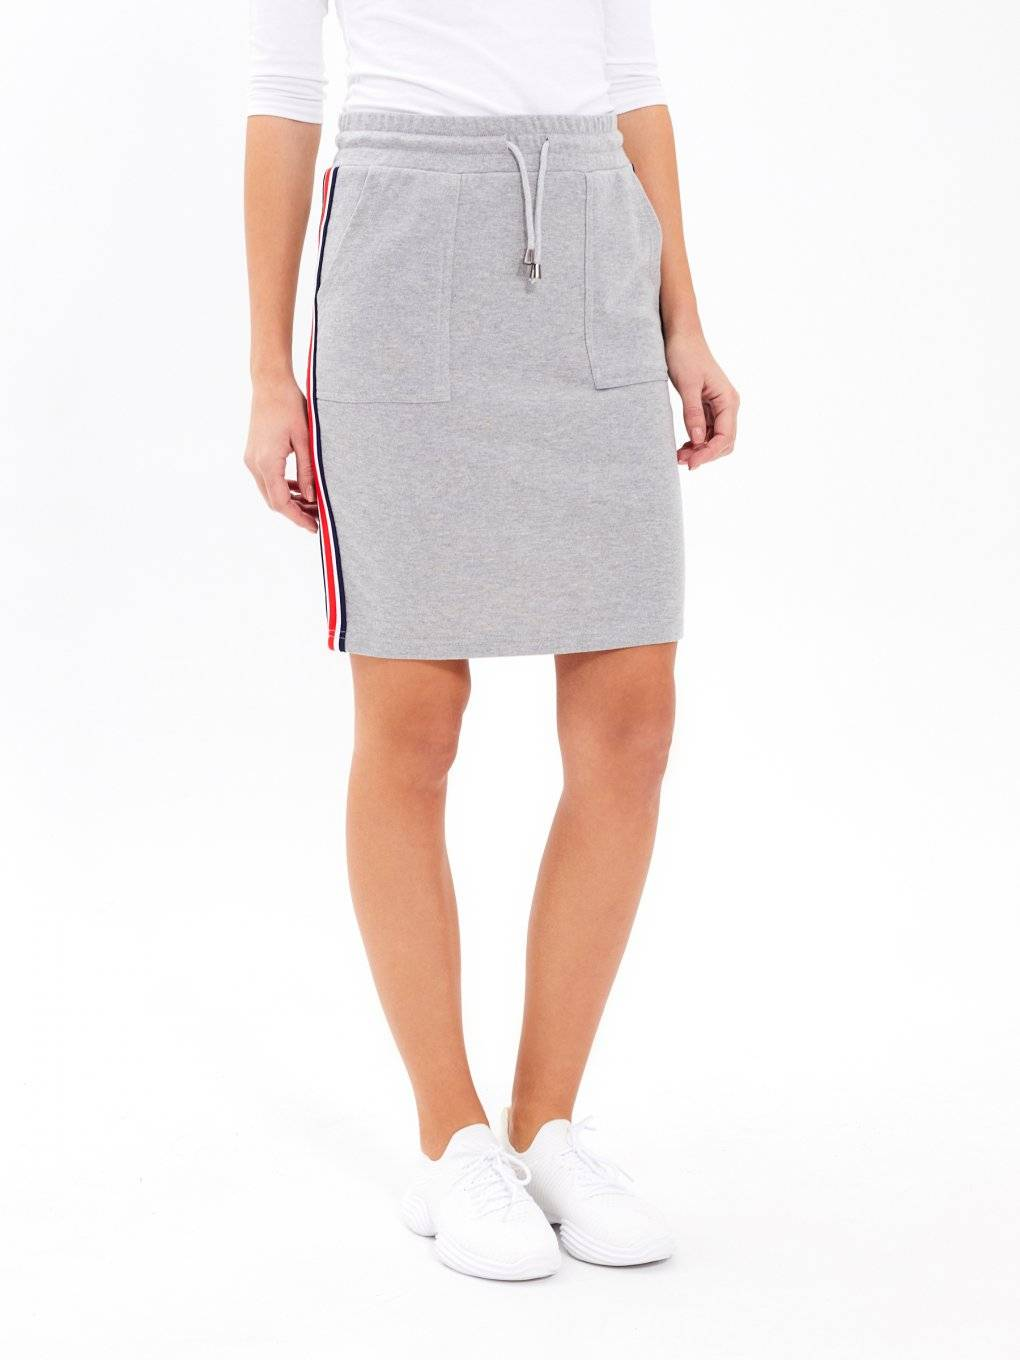 TAPED BODYCON SKIRT